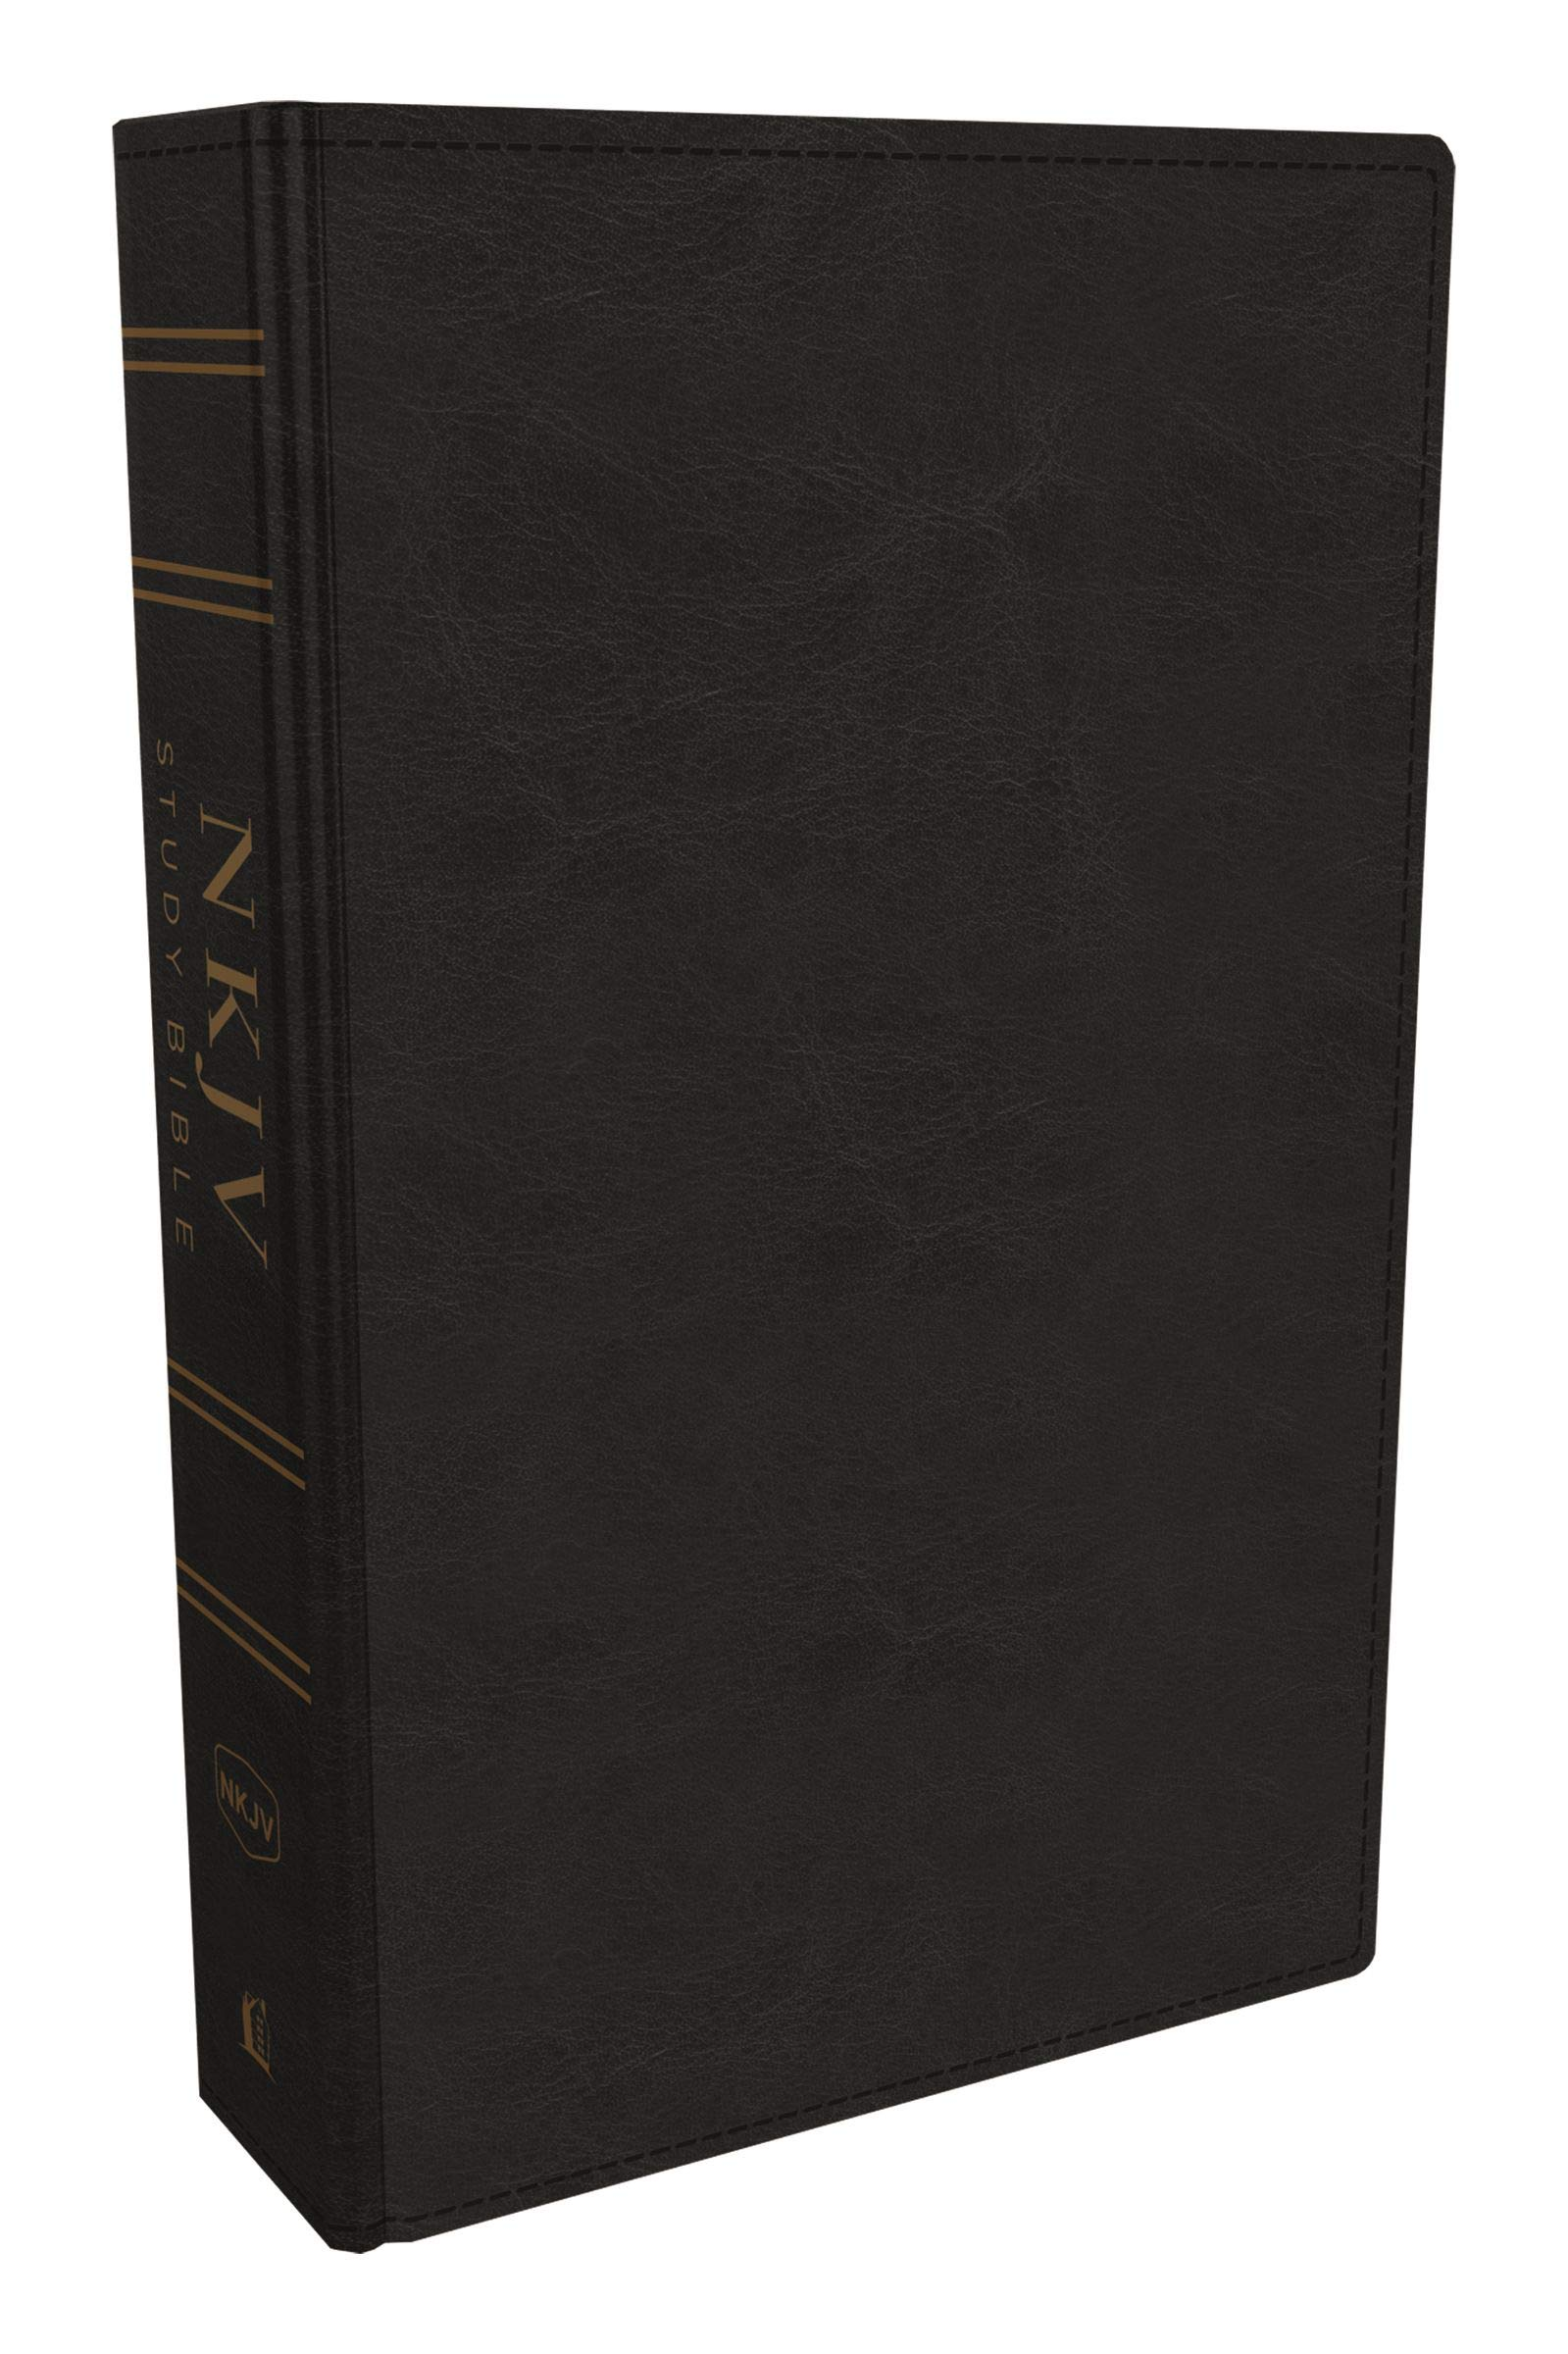 NKJV Study Bible, Leathersoft, Black, Full-Color, Comfort Print: The Complete Resource for Studying God's Word